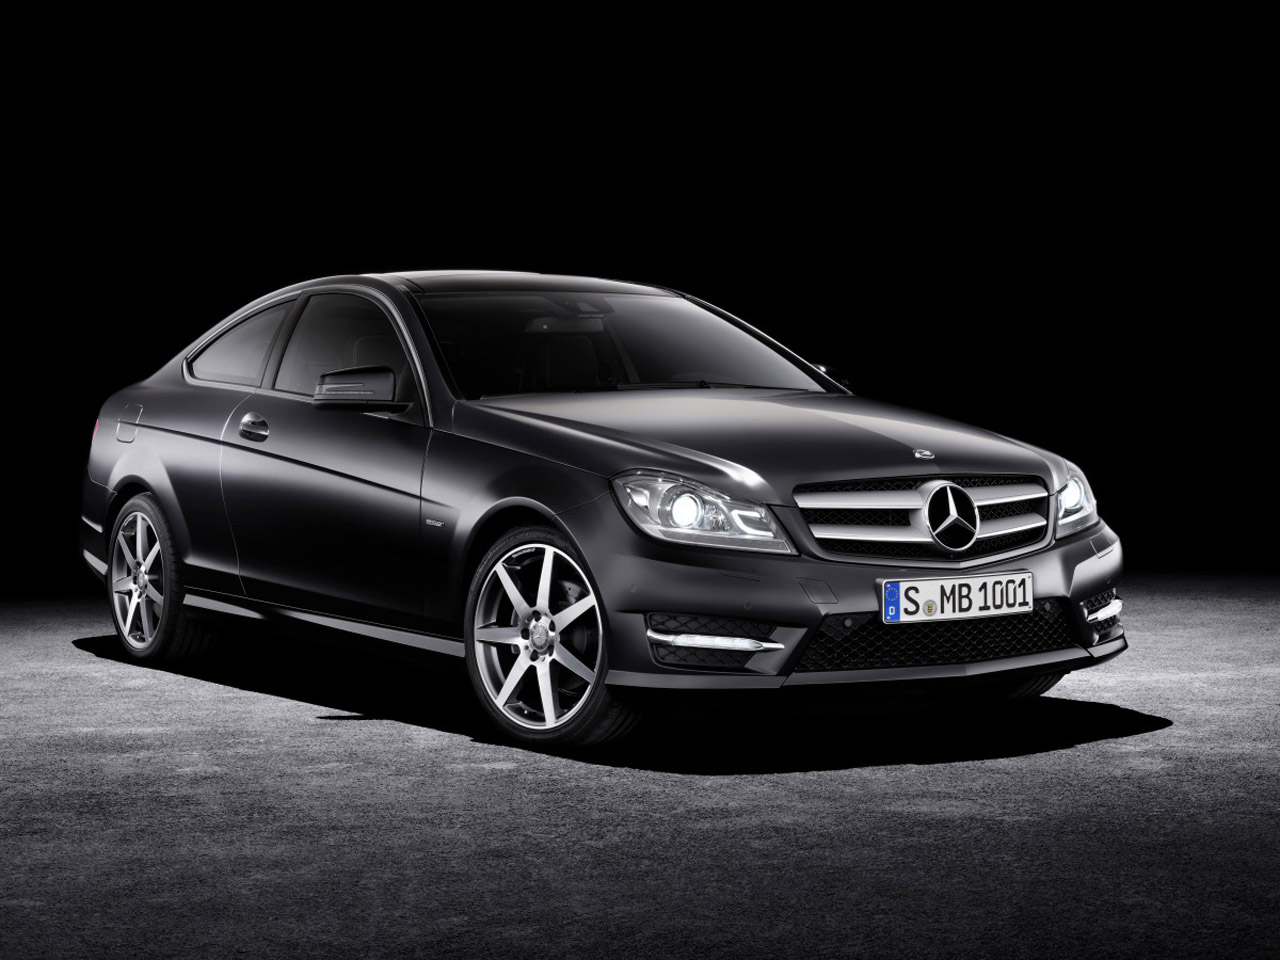 2012 mercedes benz c class coupe. Black Bedroom Furniture Sets. Home Design Ideas